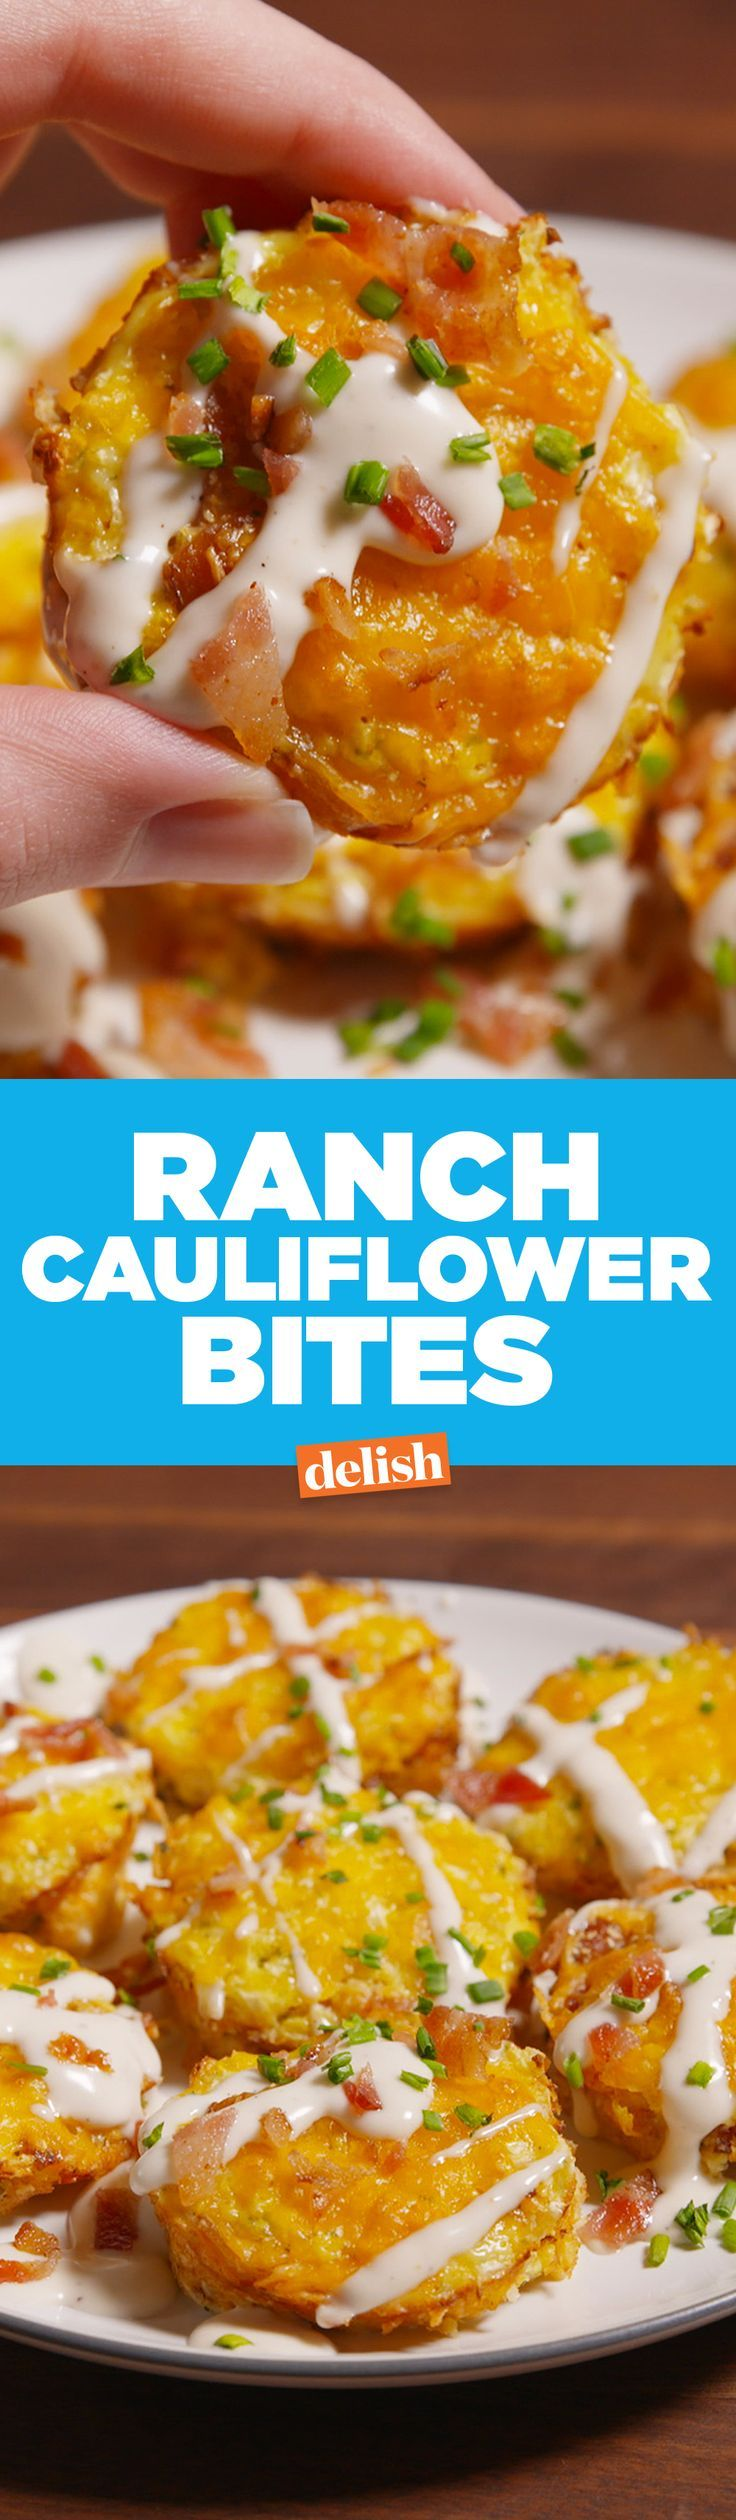 You won't be able to stop eating these low-carb Bacon Ranch Cauliflower Bites—they're addictive! Get the recipe on www.delish.com/.